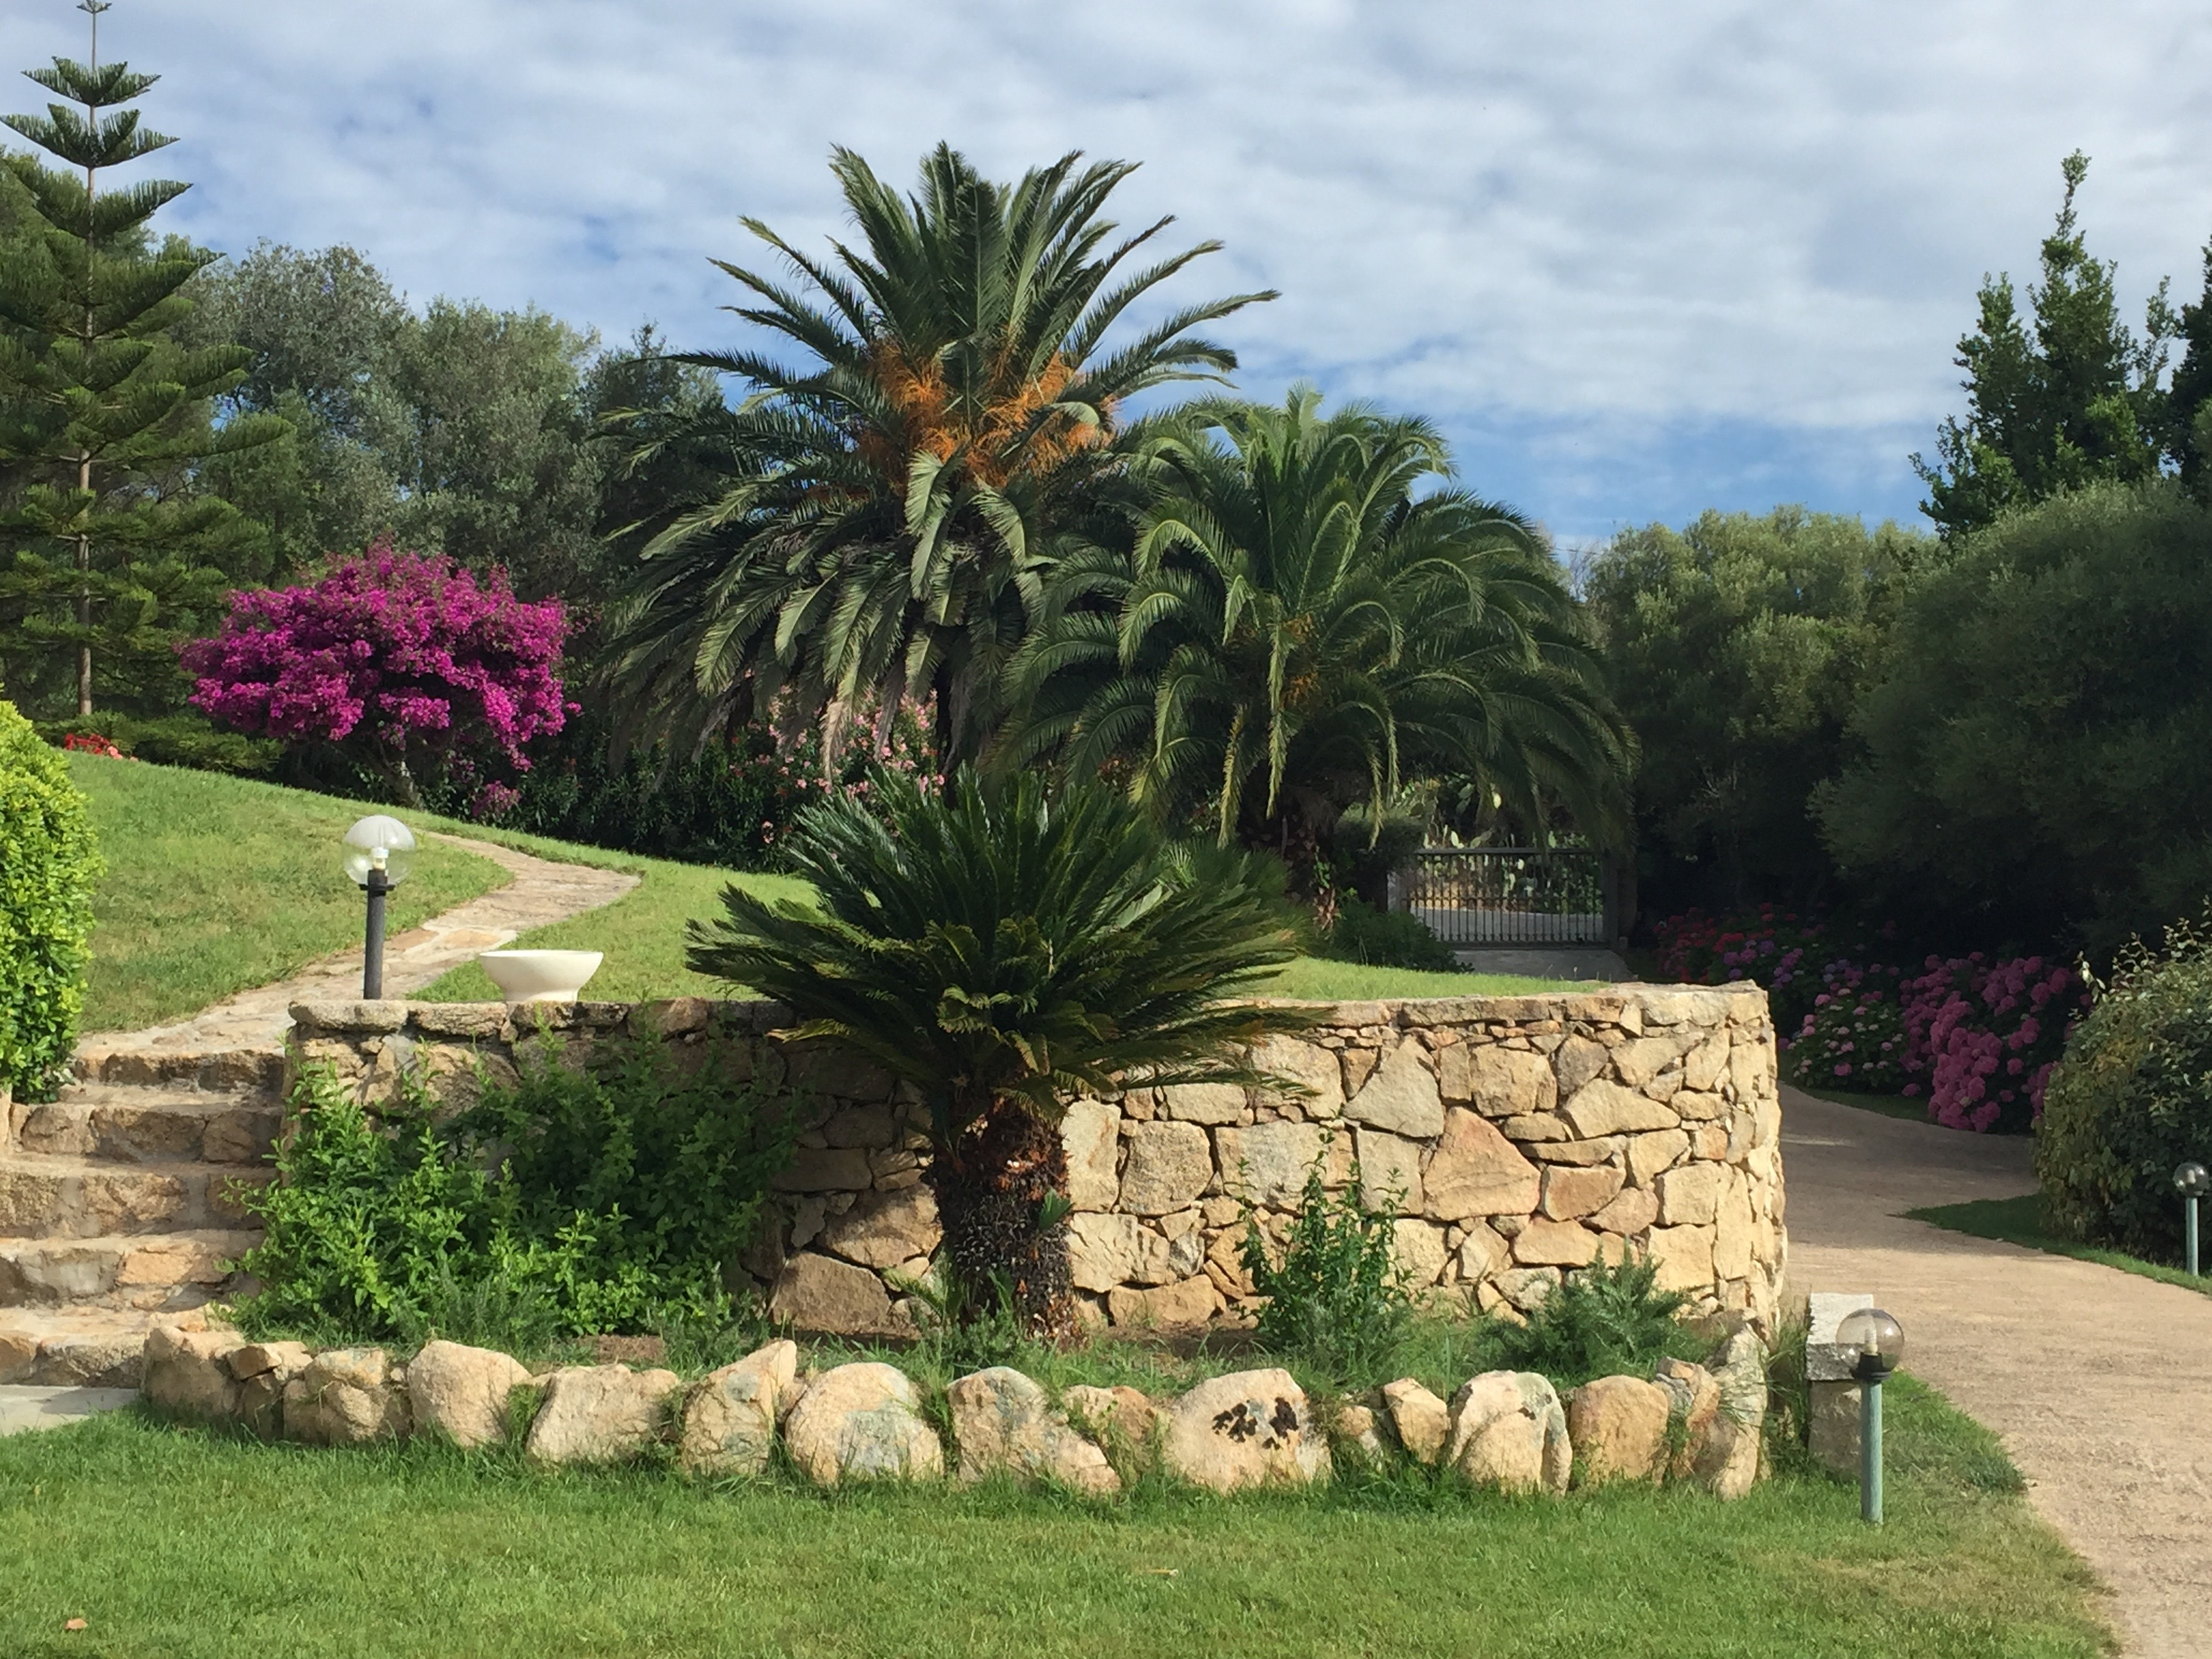 Sardinia: Our Home Away From Home